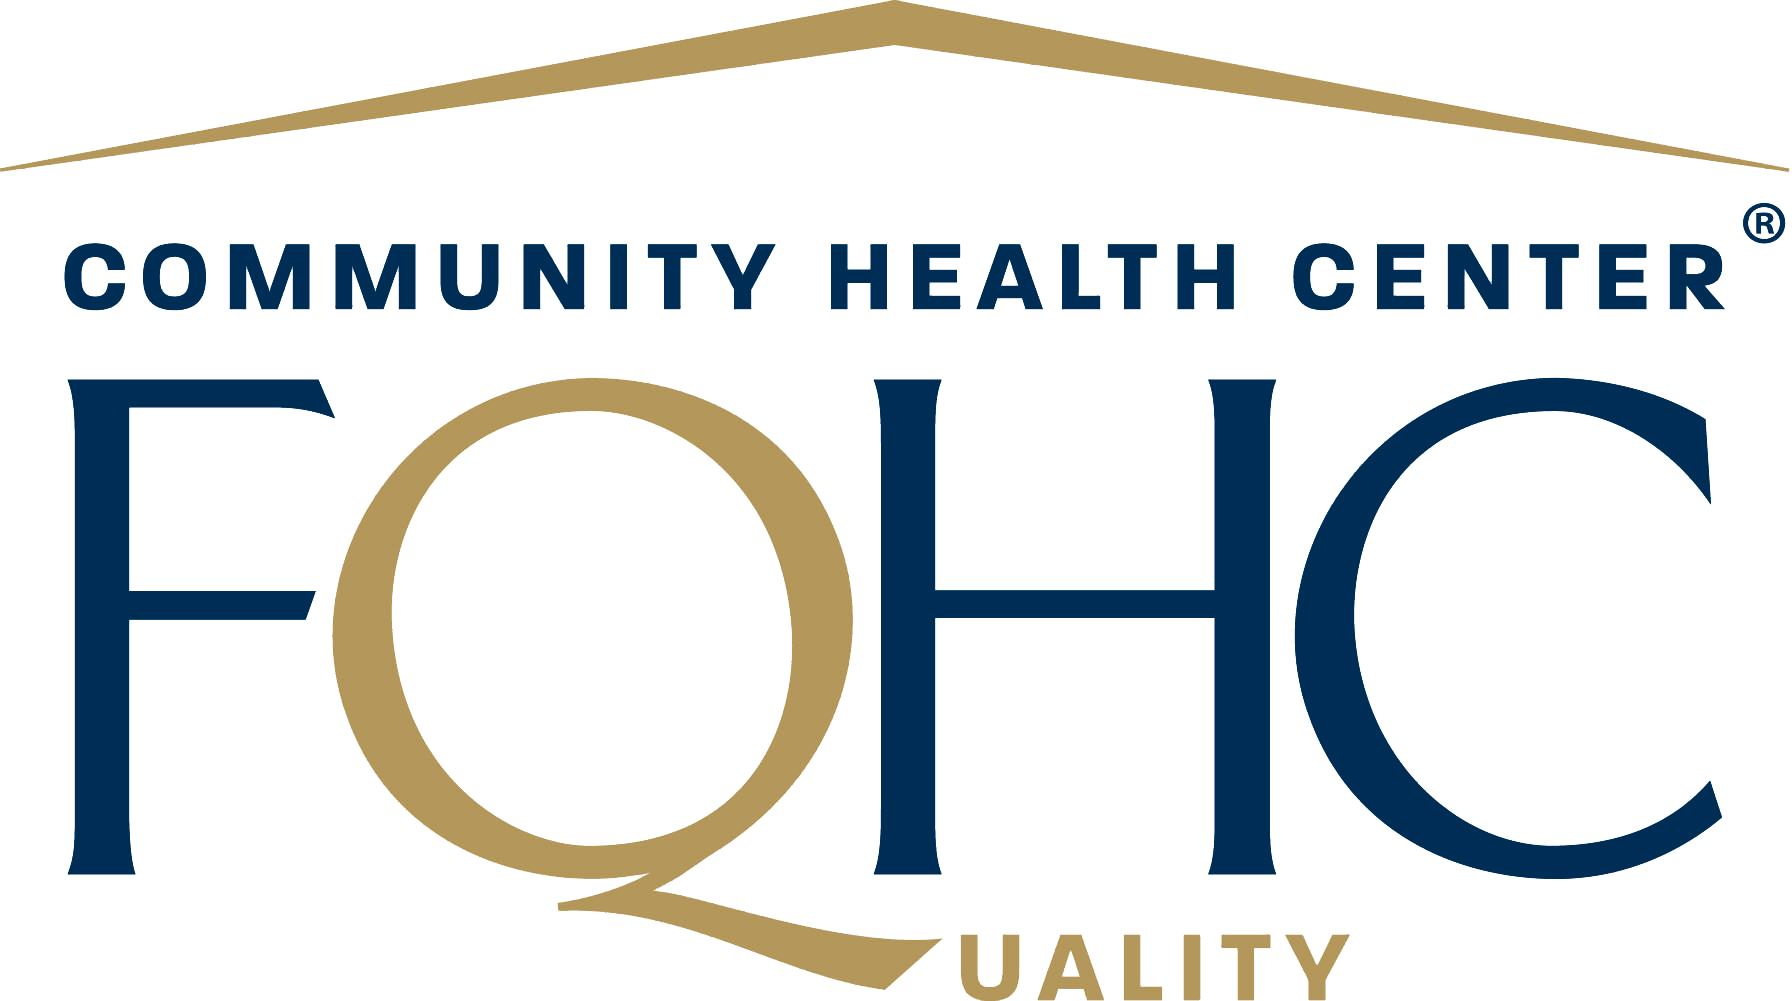 FQHC Community Health Center